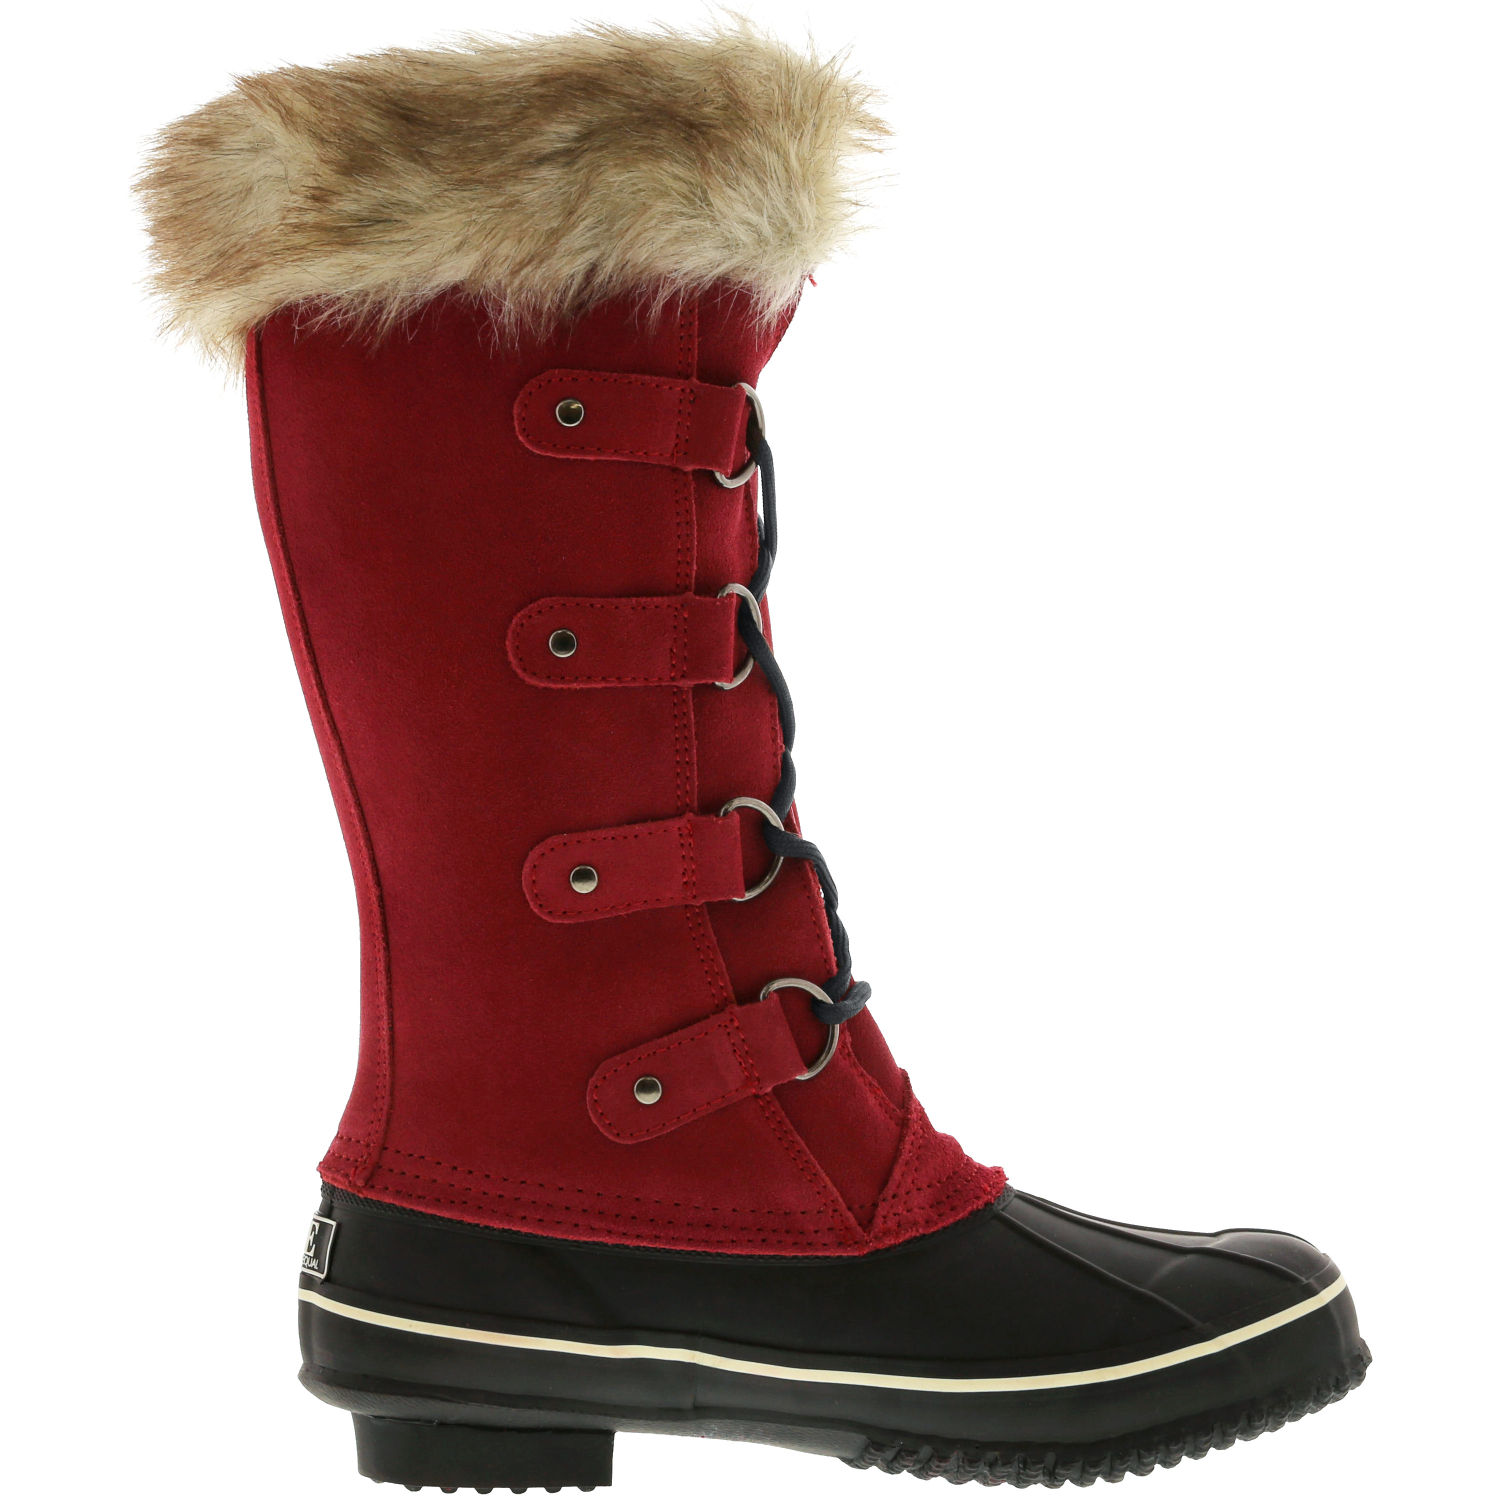 Kreated-Equal-Faux-Fur-Women-039-s-Tall-Arctic-Winter-Boots-Cruelty-Free-Lightw thumbnail 23